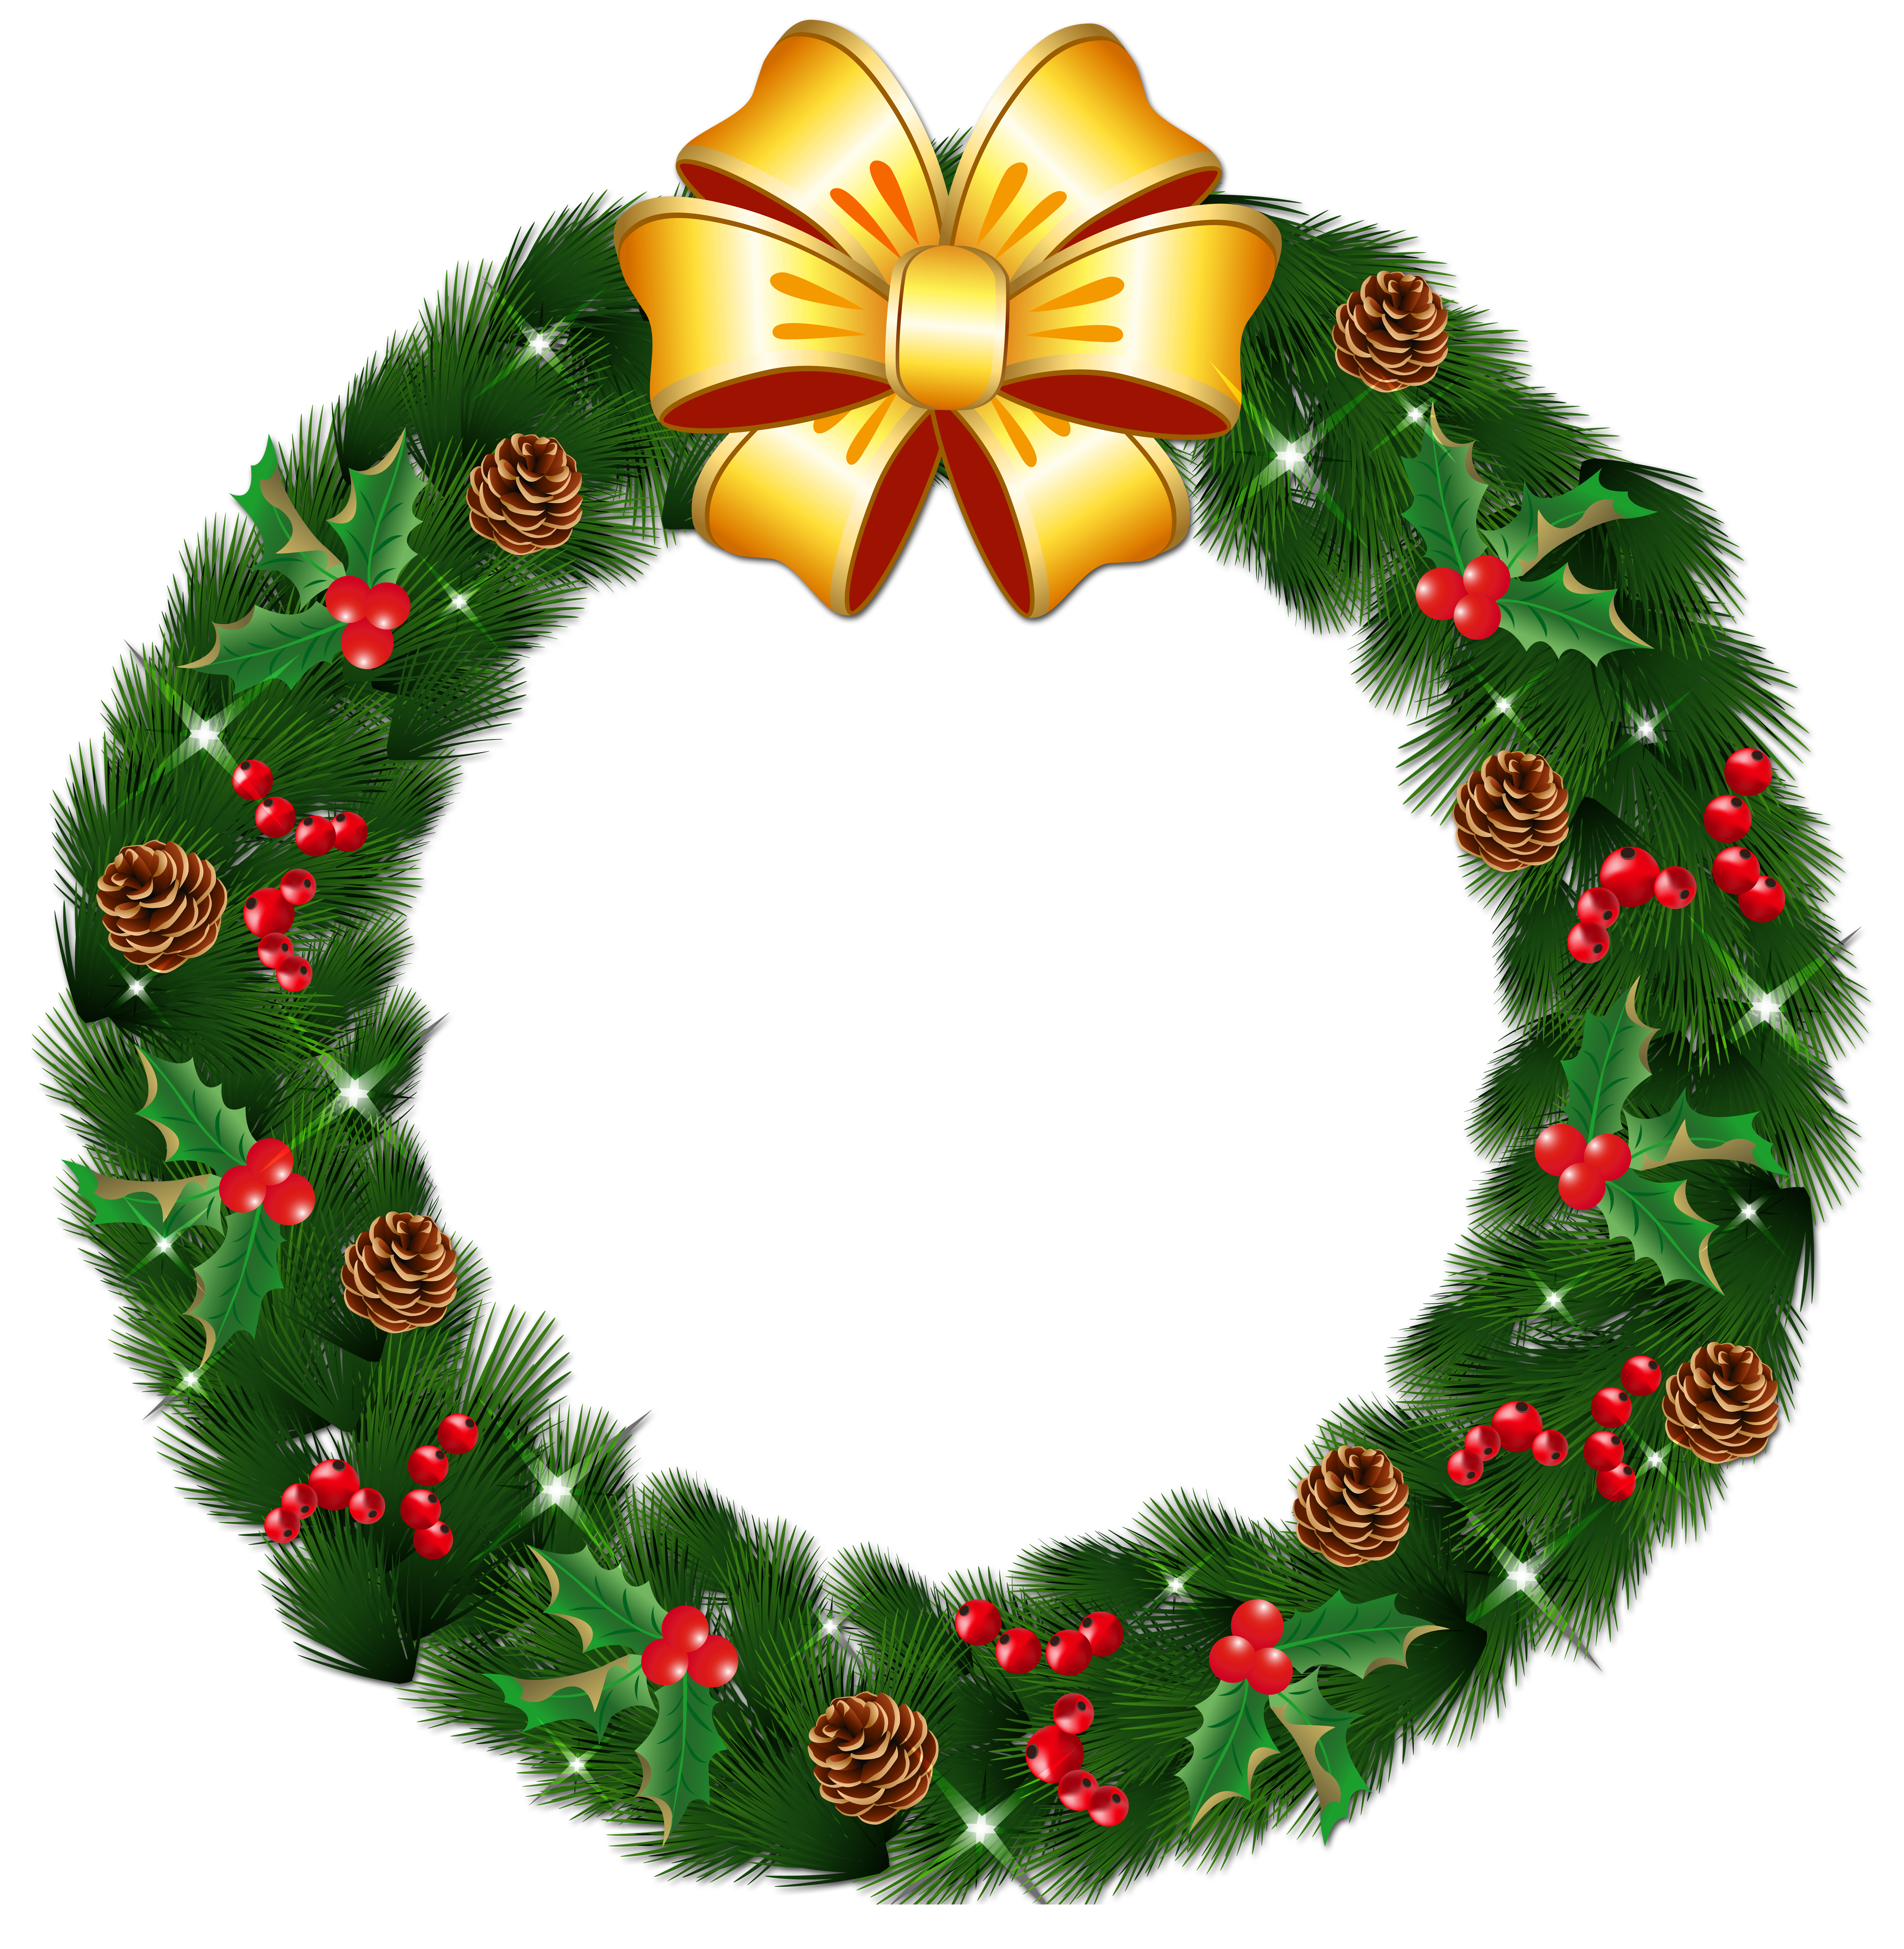 Clipart bow wreath bow. Transparent christmas pine with